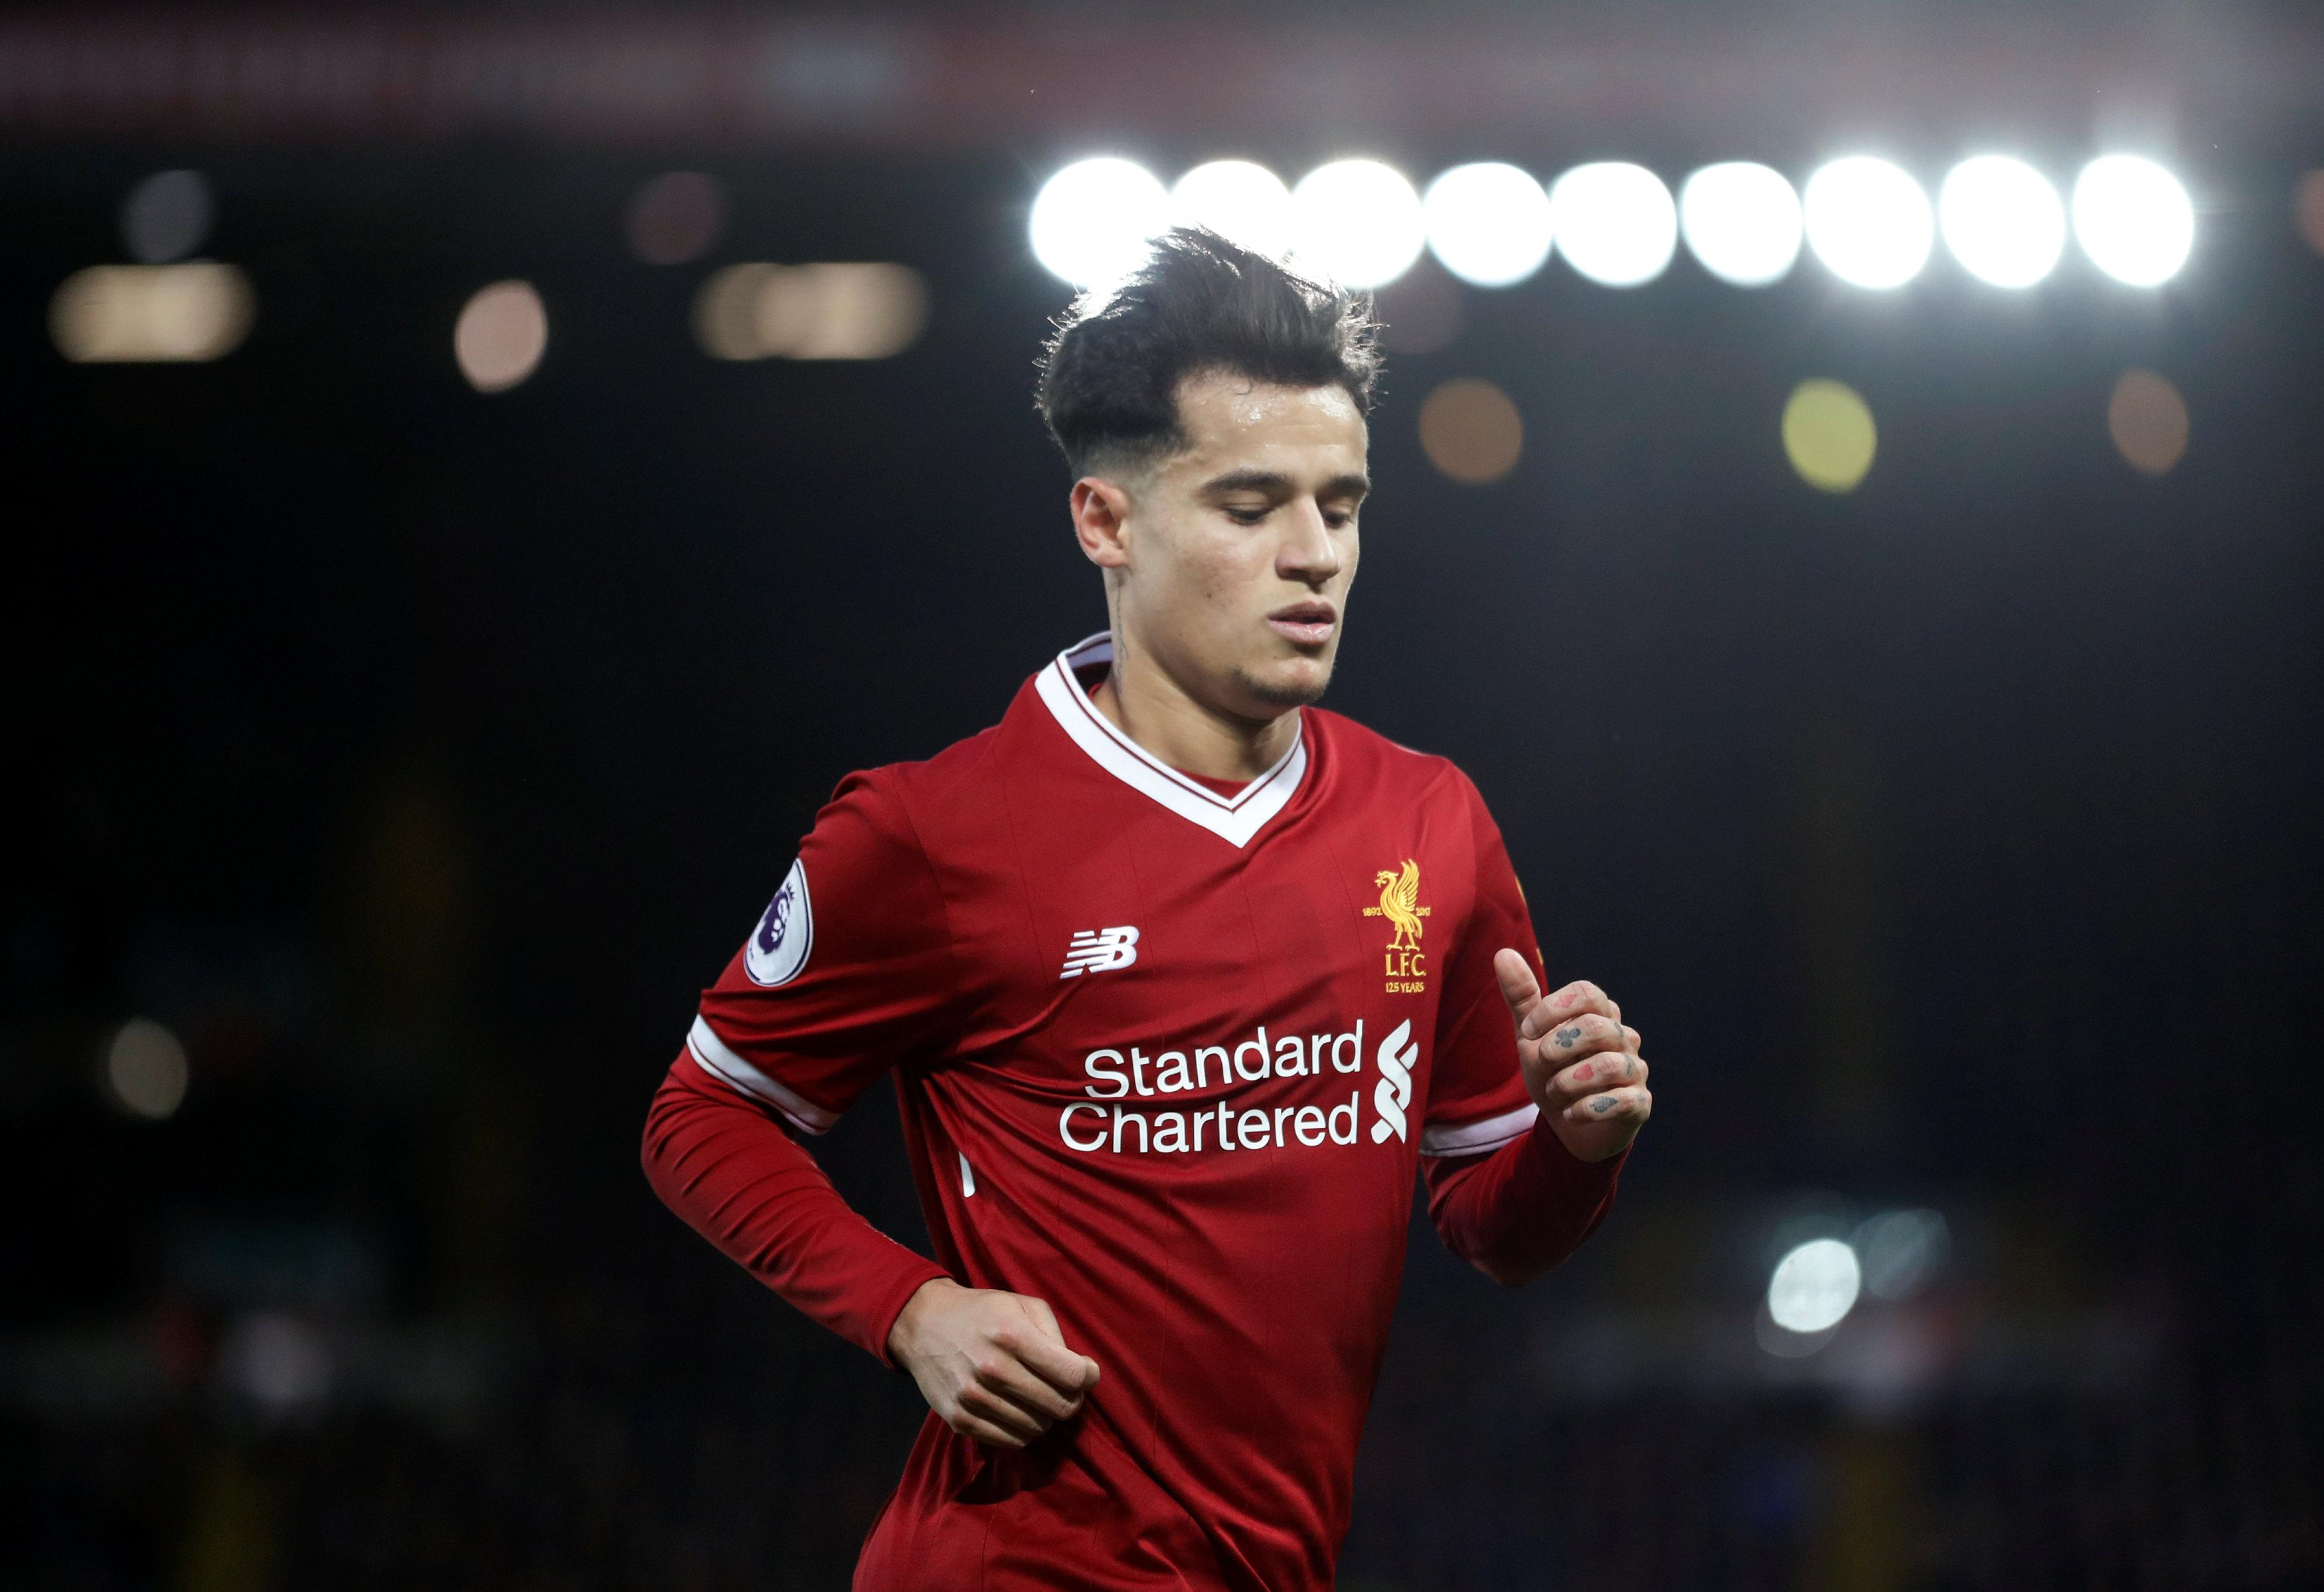 Liverpool agree sale of Coutinho to Barcelona